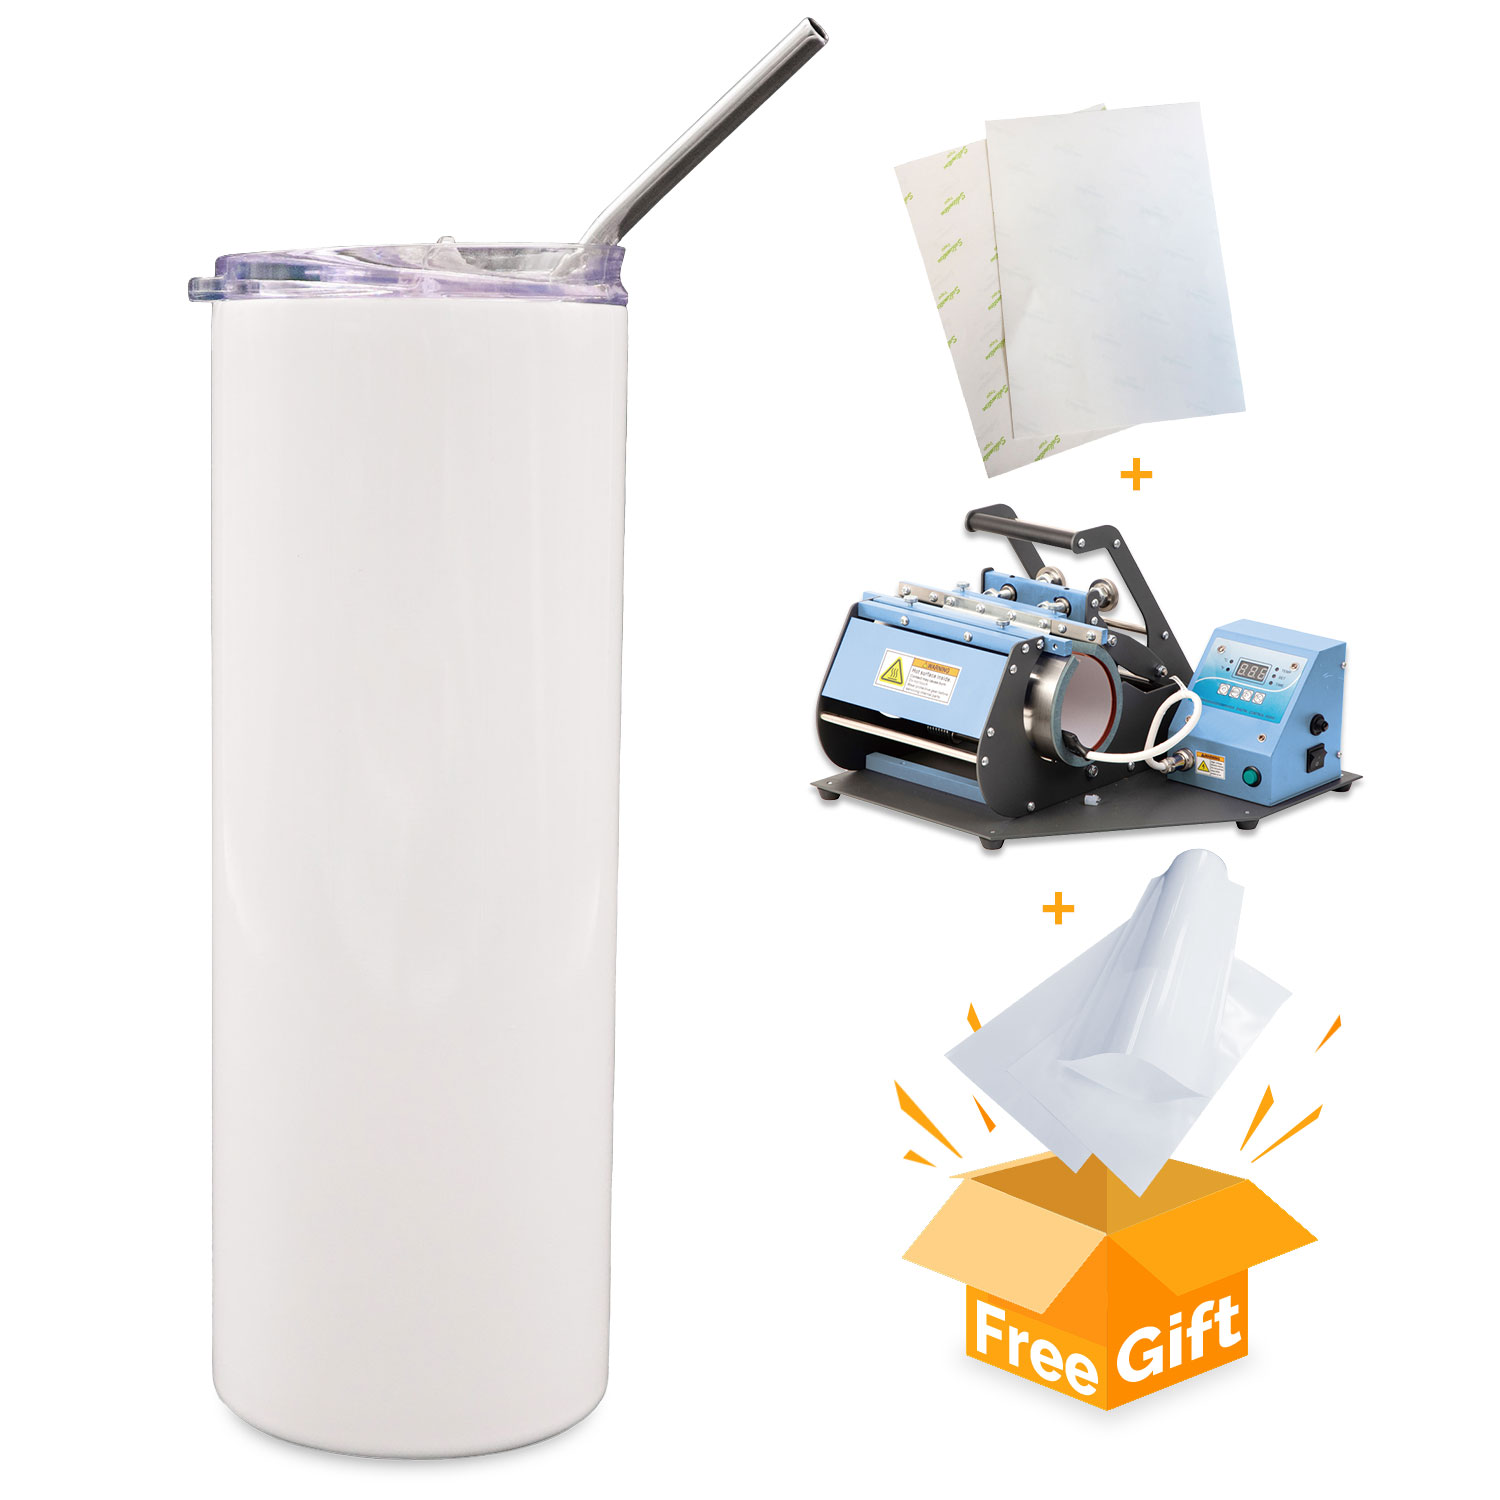 500 Pack 20oz Straight White Sublimation Tumbler Blanks w/ Straw and Flip Lid, Vacuum Insulated Double Layer 304 Stainless Steel Water Bottle